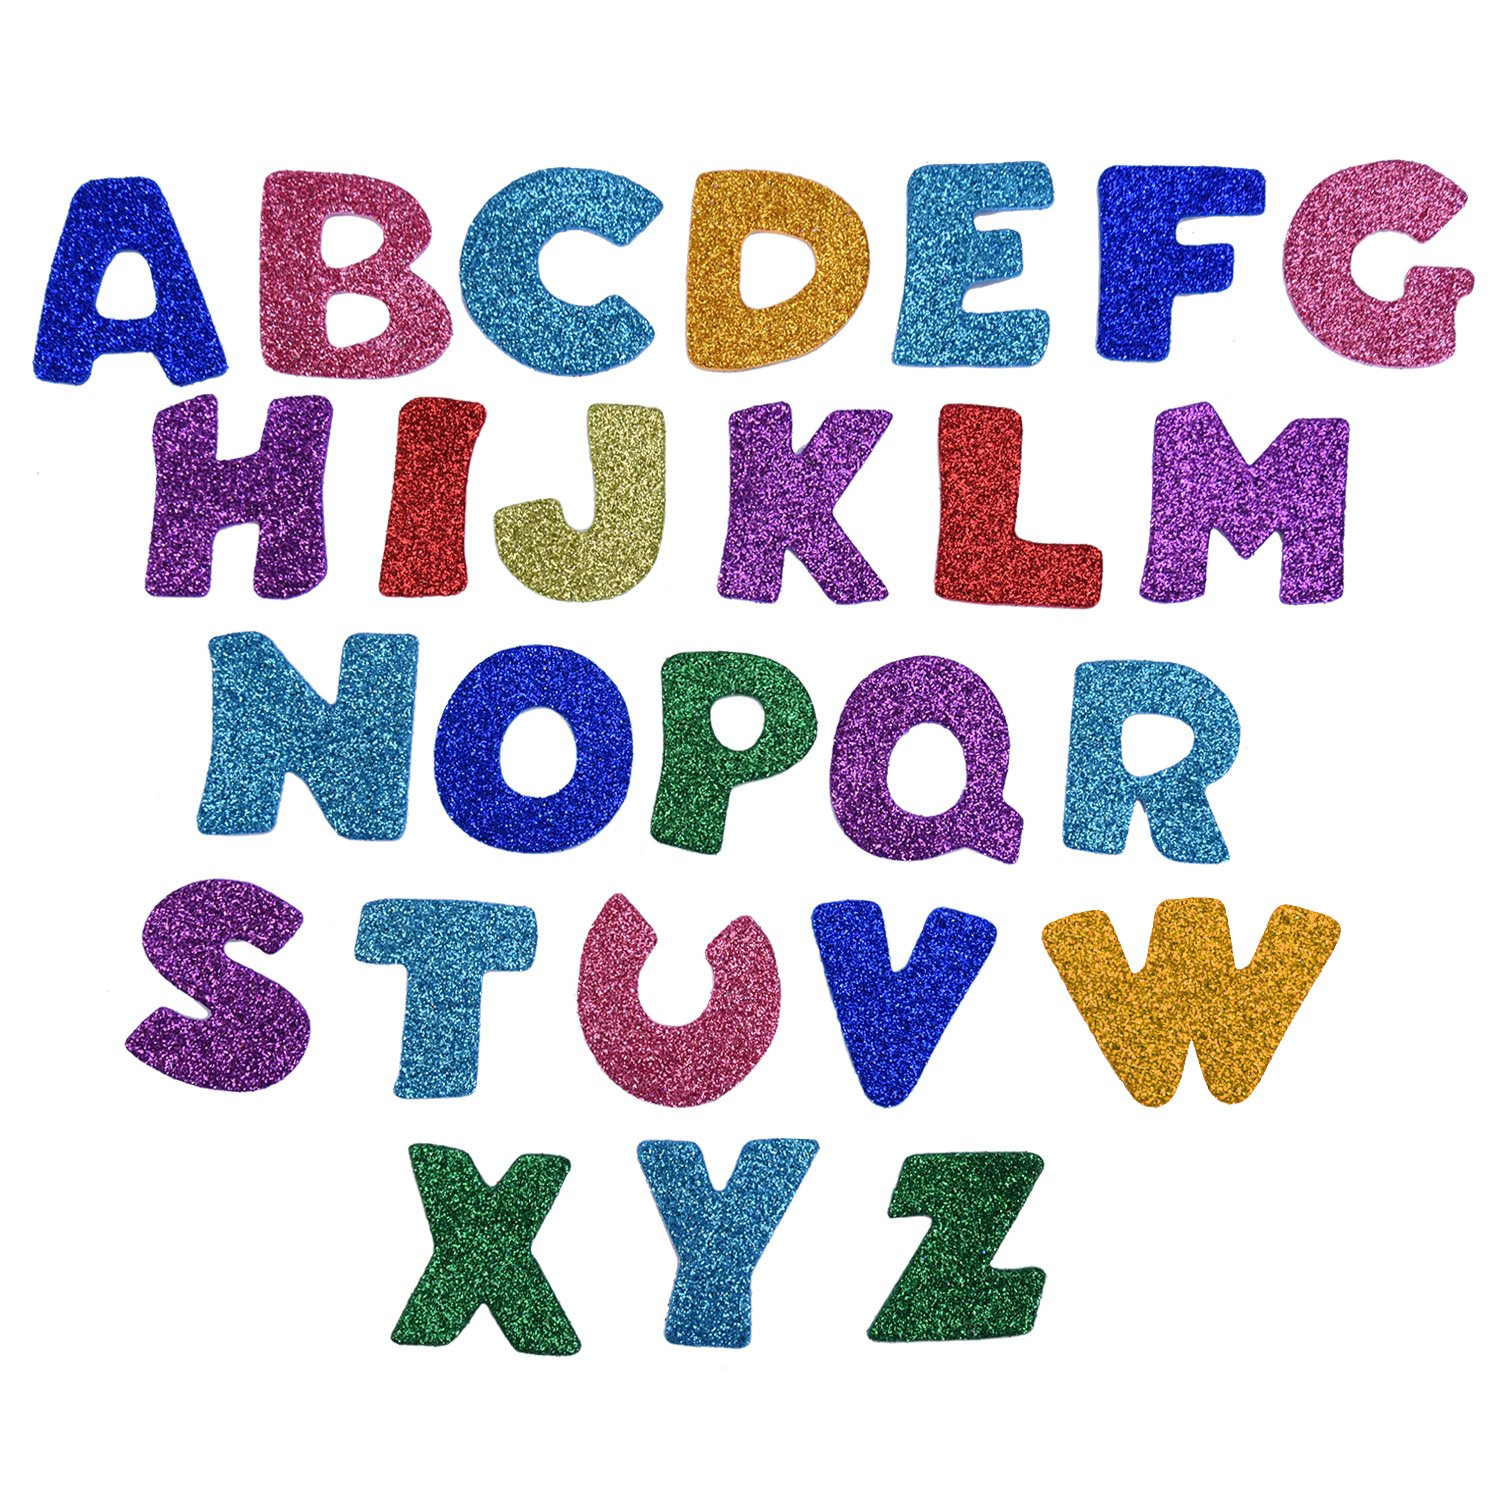 Glitter Foam Stickers Letter Sticker Self Adhesive Letters Assorted Colors 5 Sets